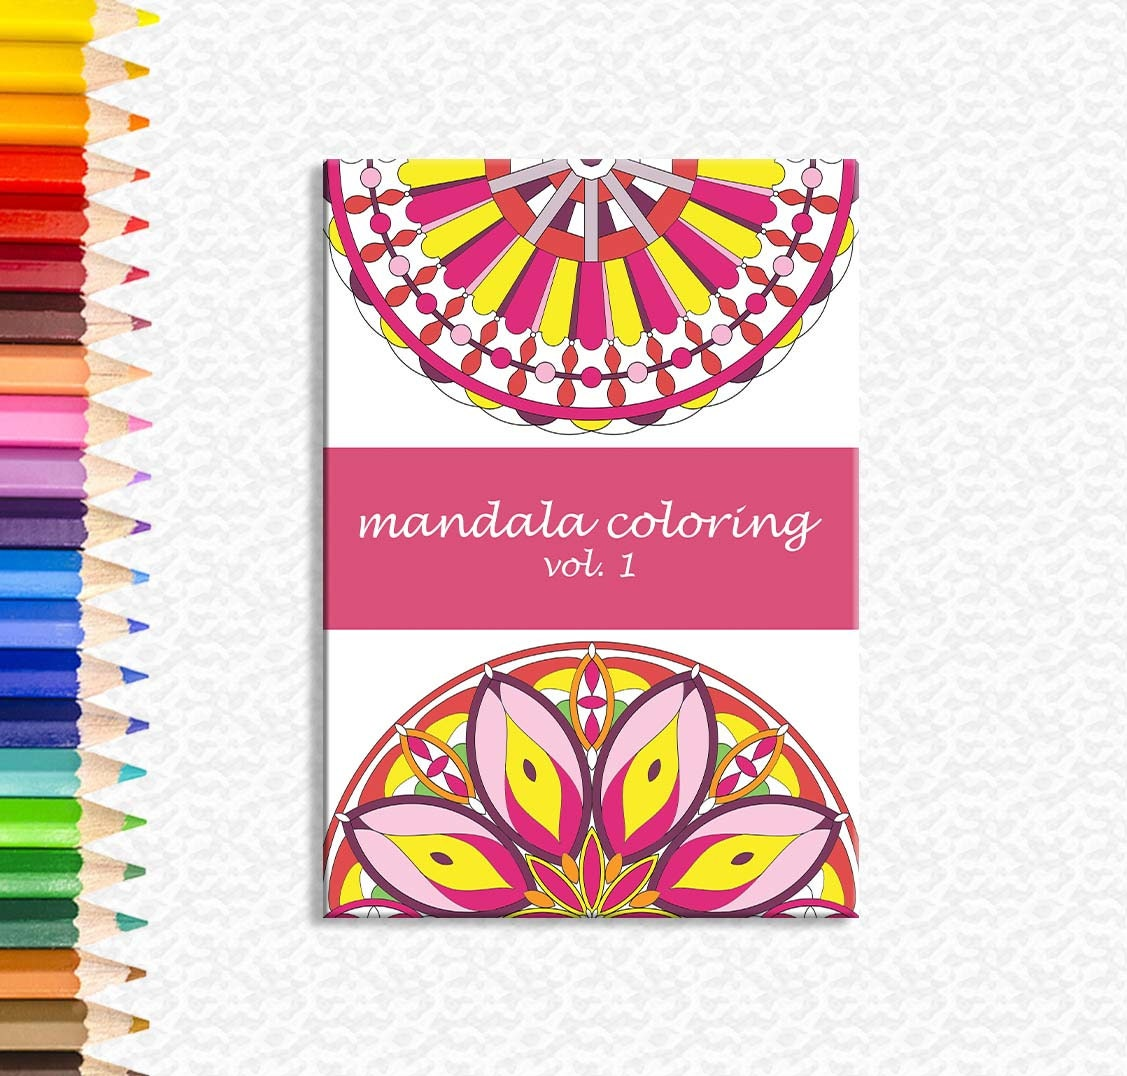 Mandala coloring mandala color book adult coloring sheet